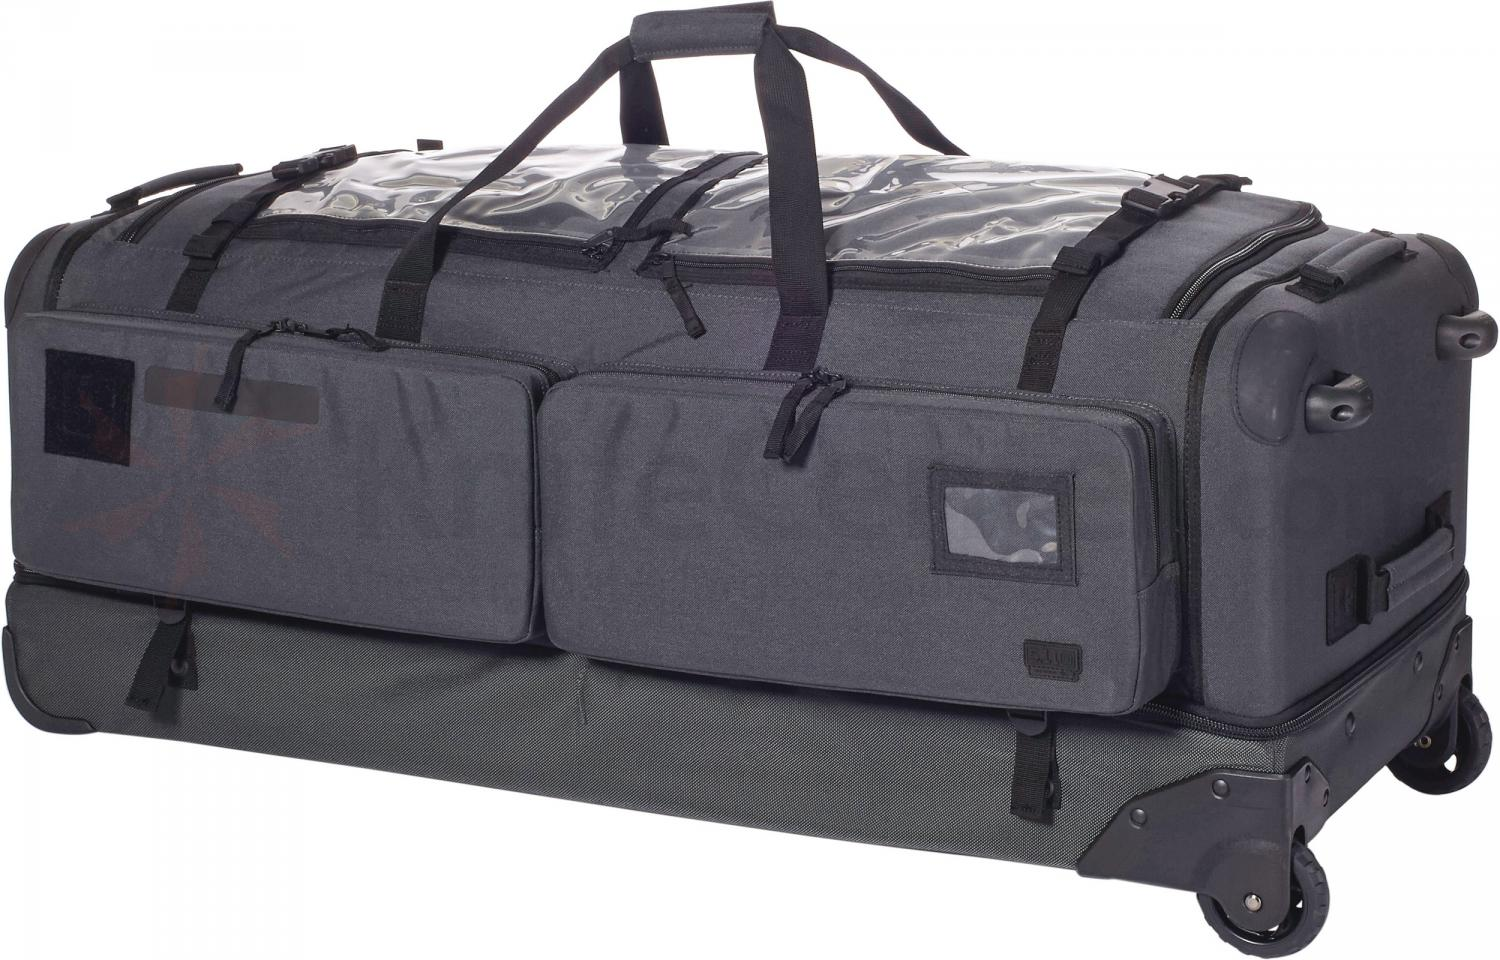 5 11 Tactical Cams 2 0 Large Tactical Rolling Duffel